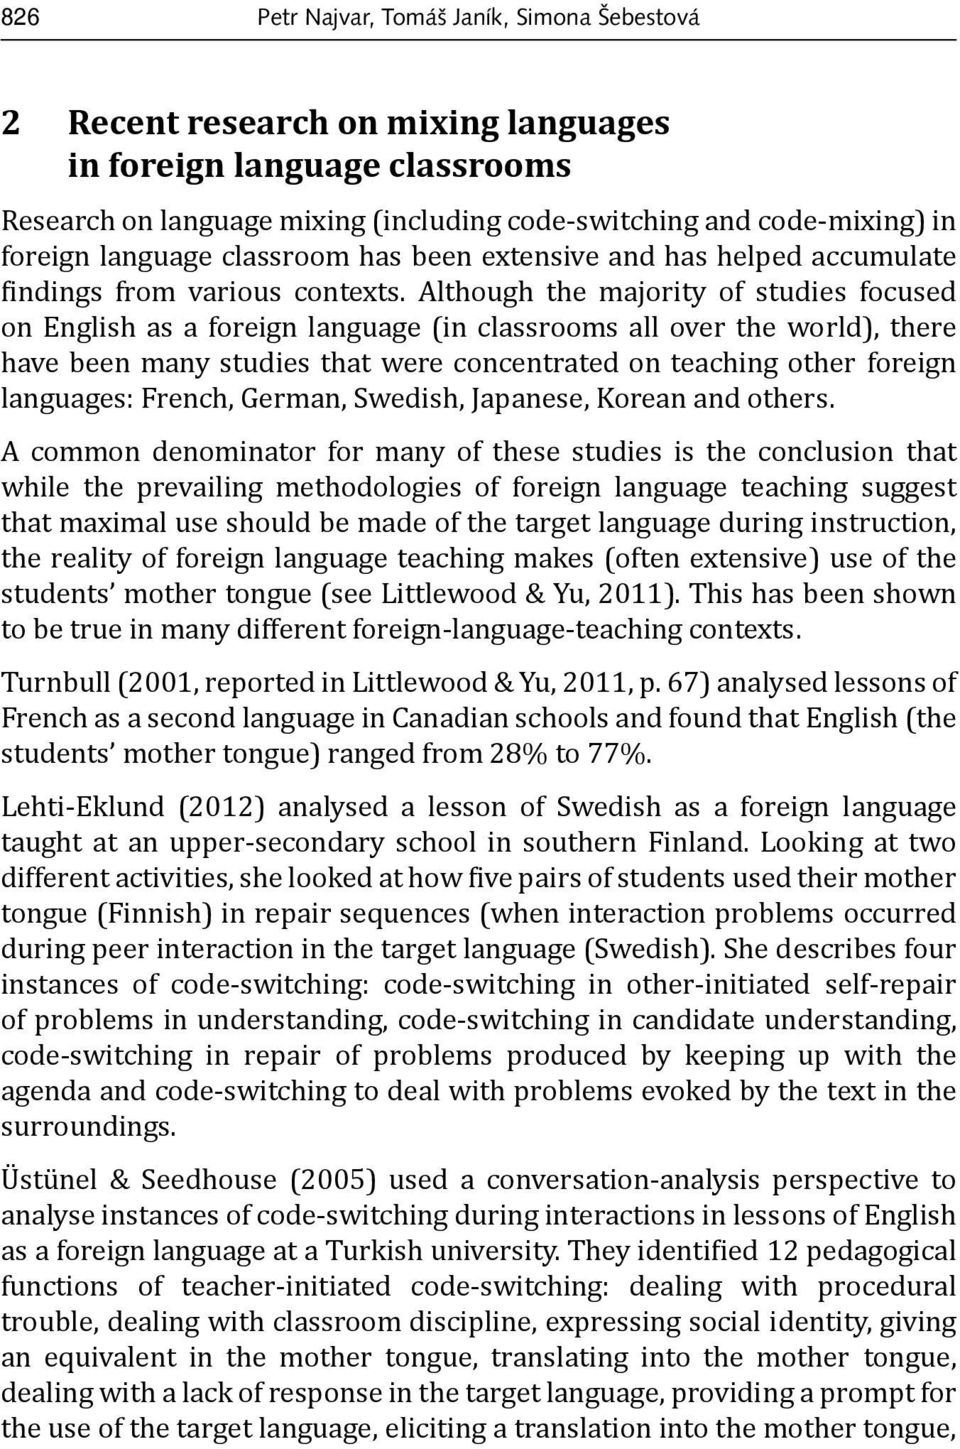 Although the majority of studies focused on English as a foreign language (in classrooms all over the world), there have been many studies that were concentrated on teaching other foreign languages: